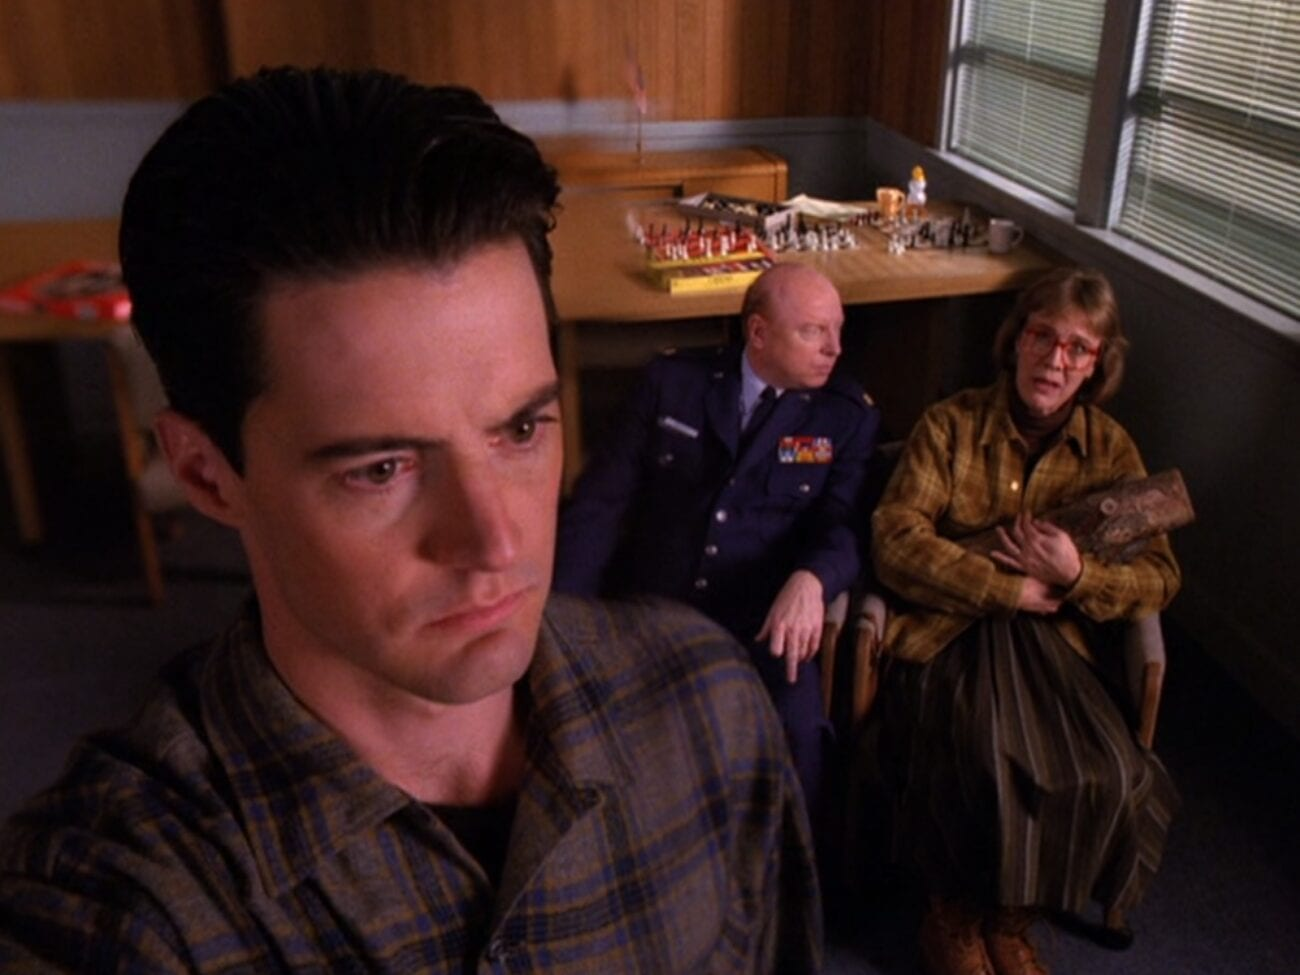 Cooper looks ahead in the foreground, Major Briggs and Log Lady sitting in the background, in the sheriff station conference room